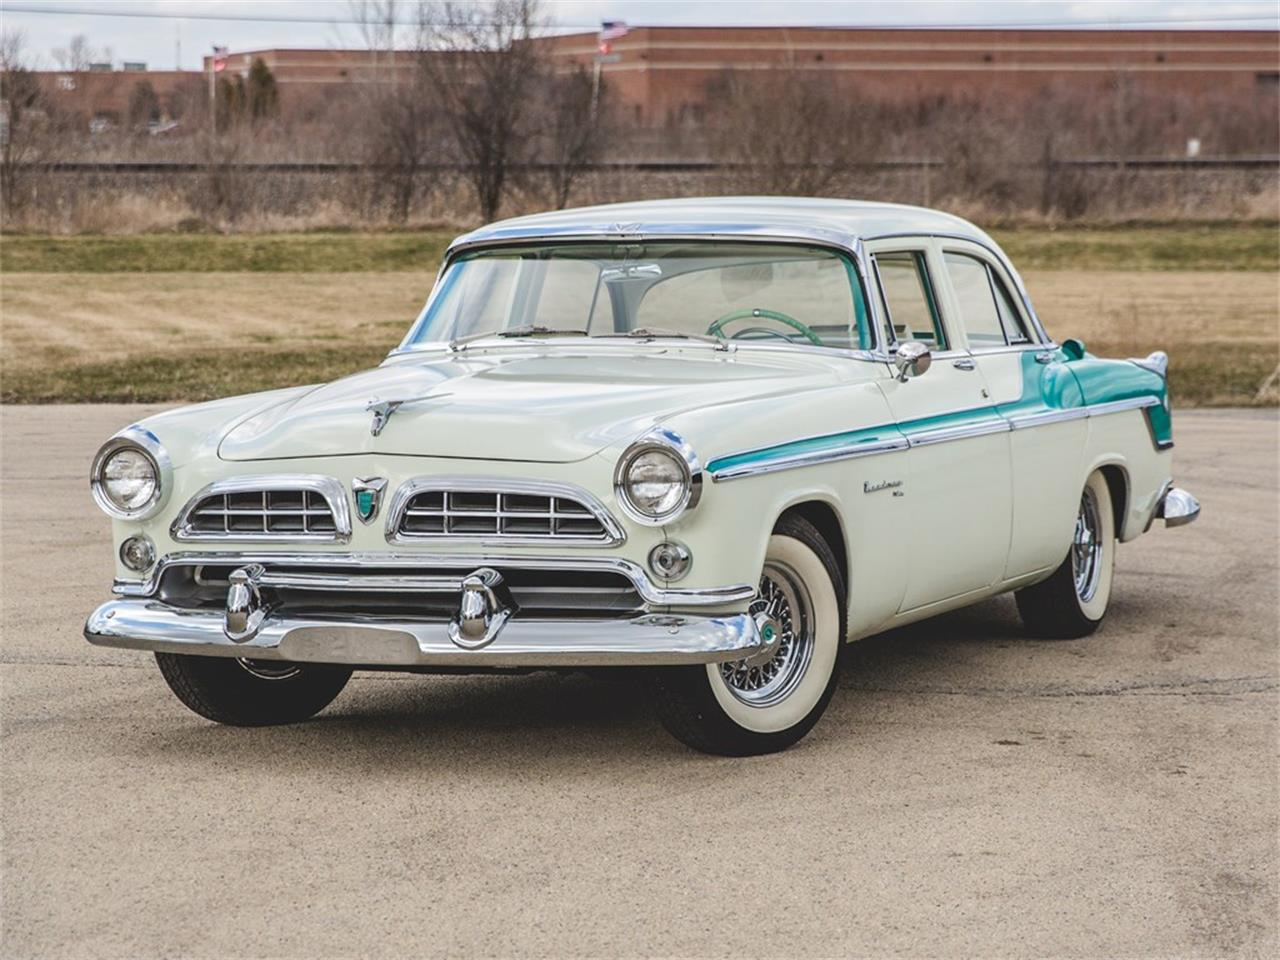 Large Picture of '55 Chrysler Windsor located in Auburn Indiana Auction Vehicle Offered by RM Sotheby's - N8RK